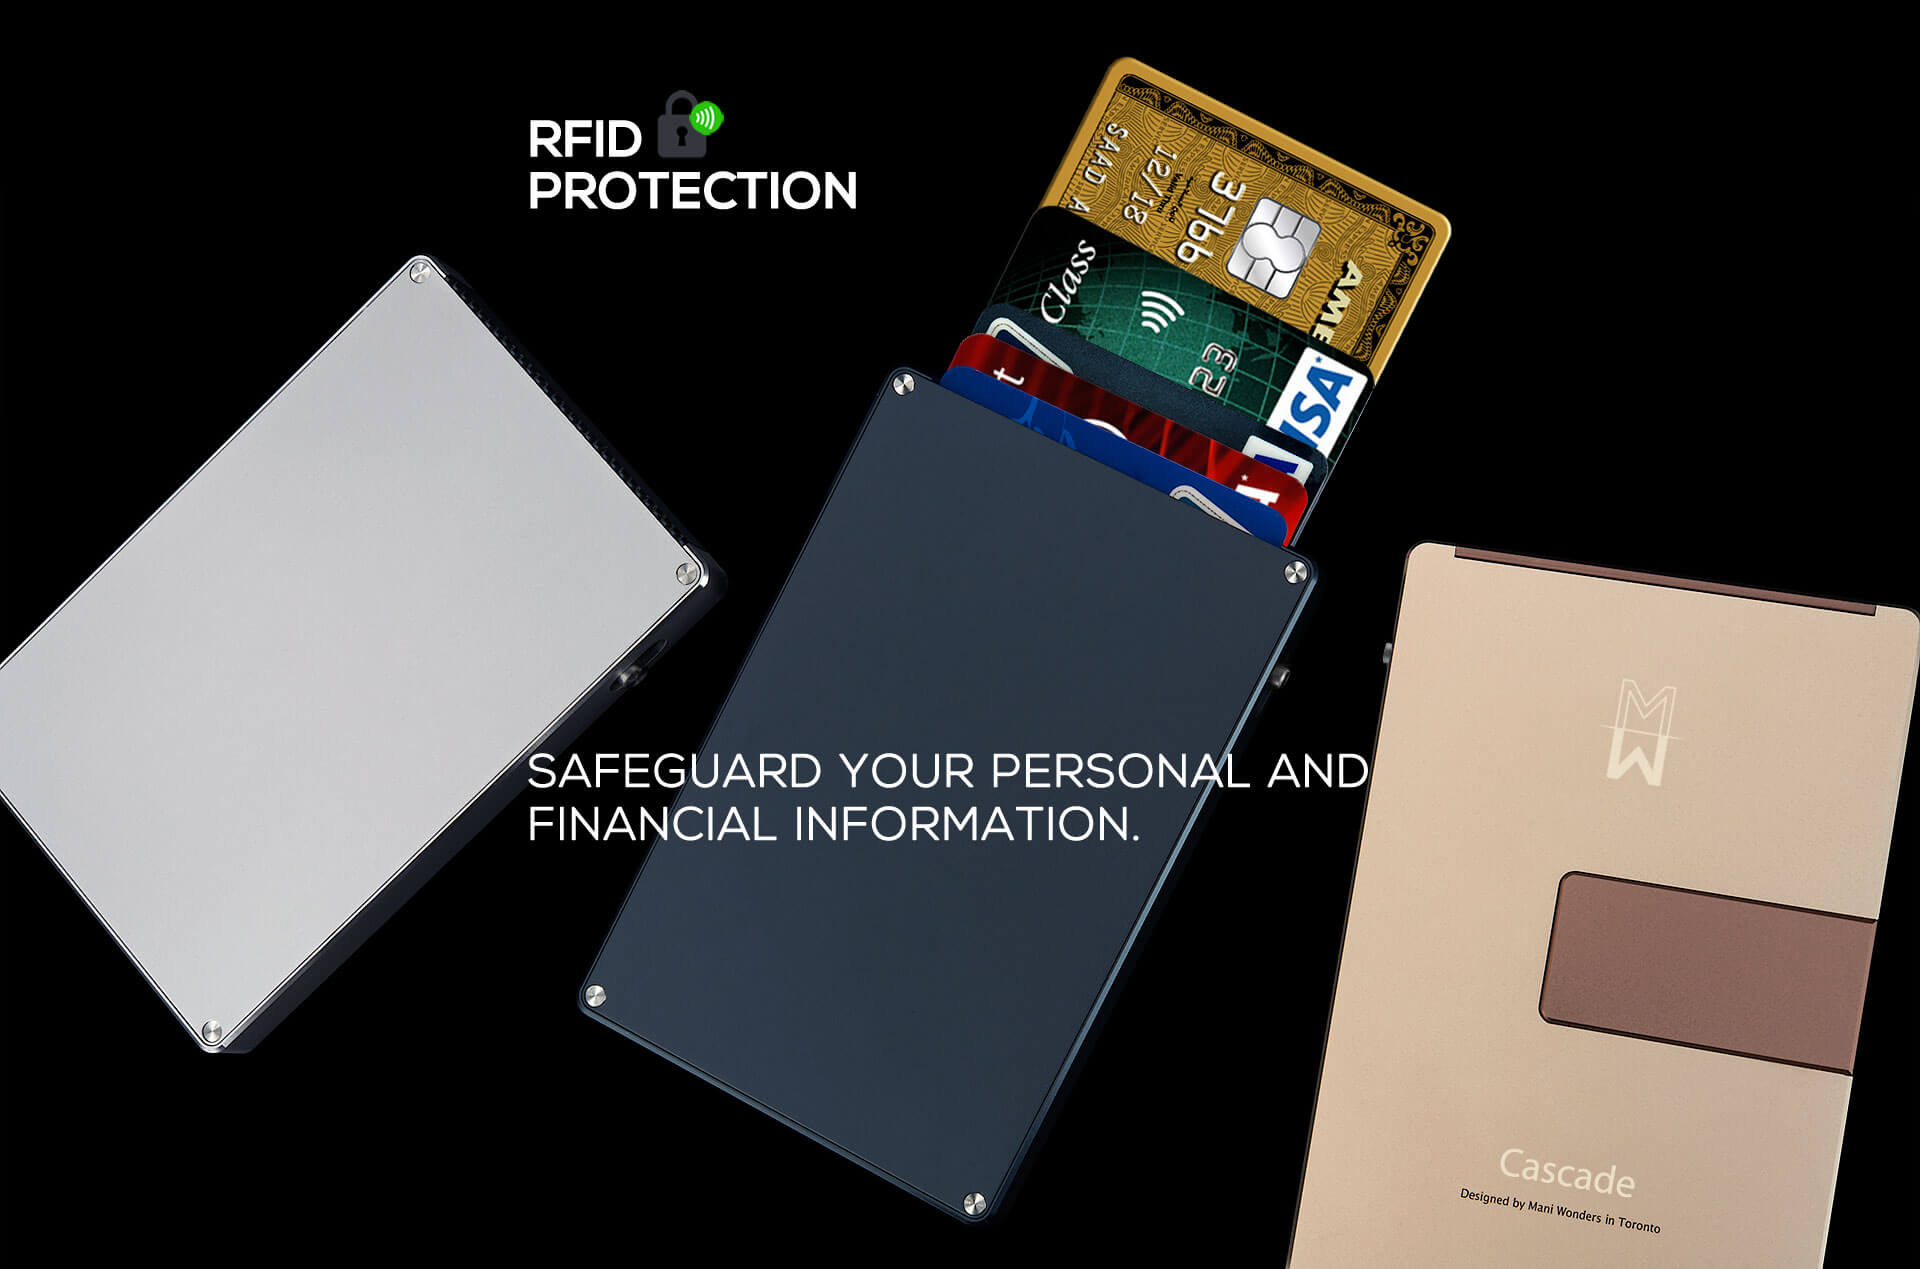 Safeguard your personal and financial information.